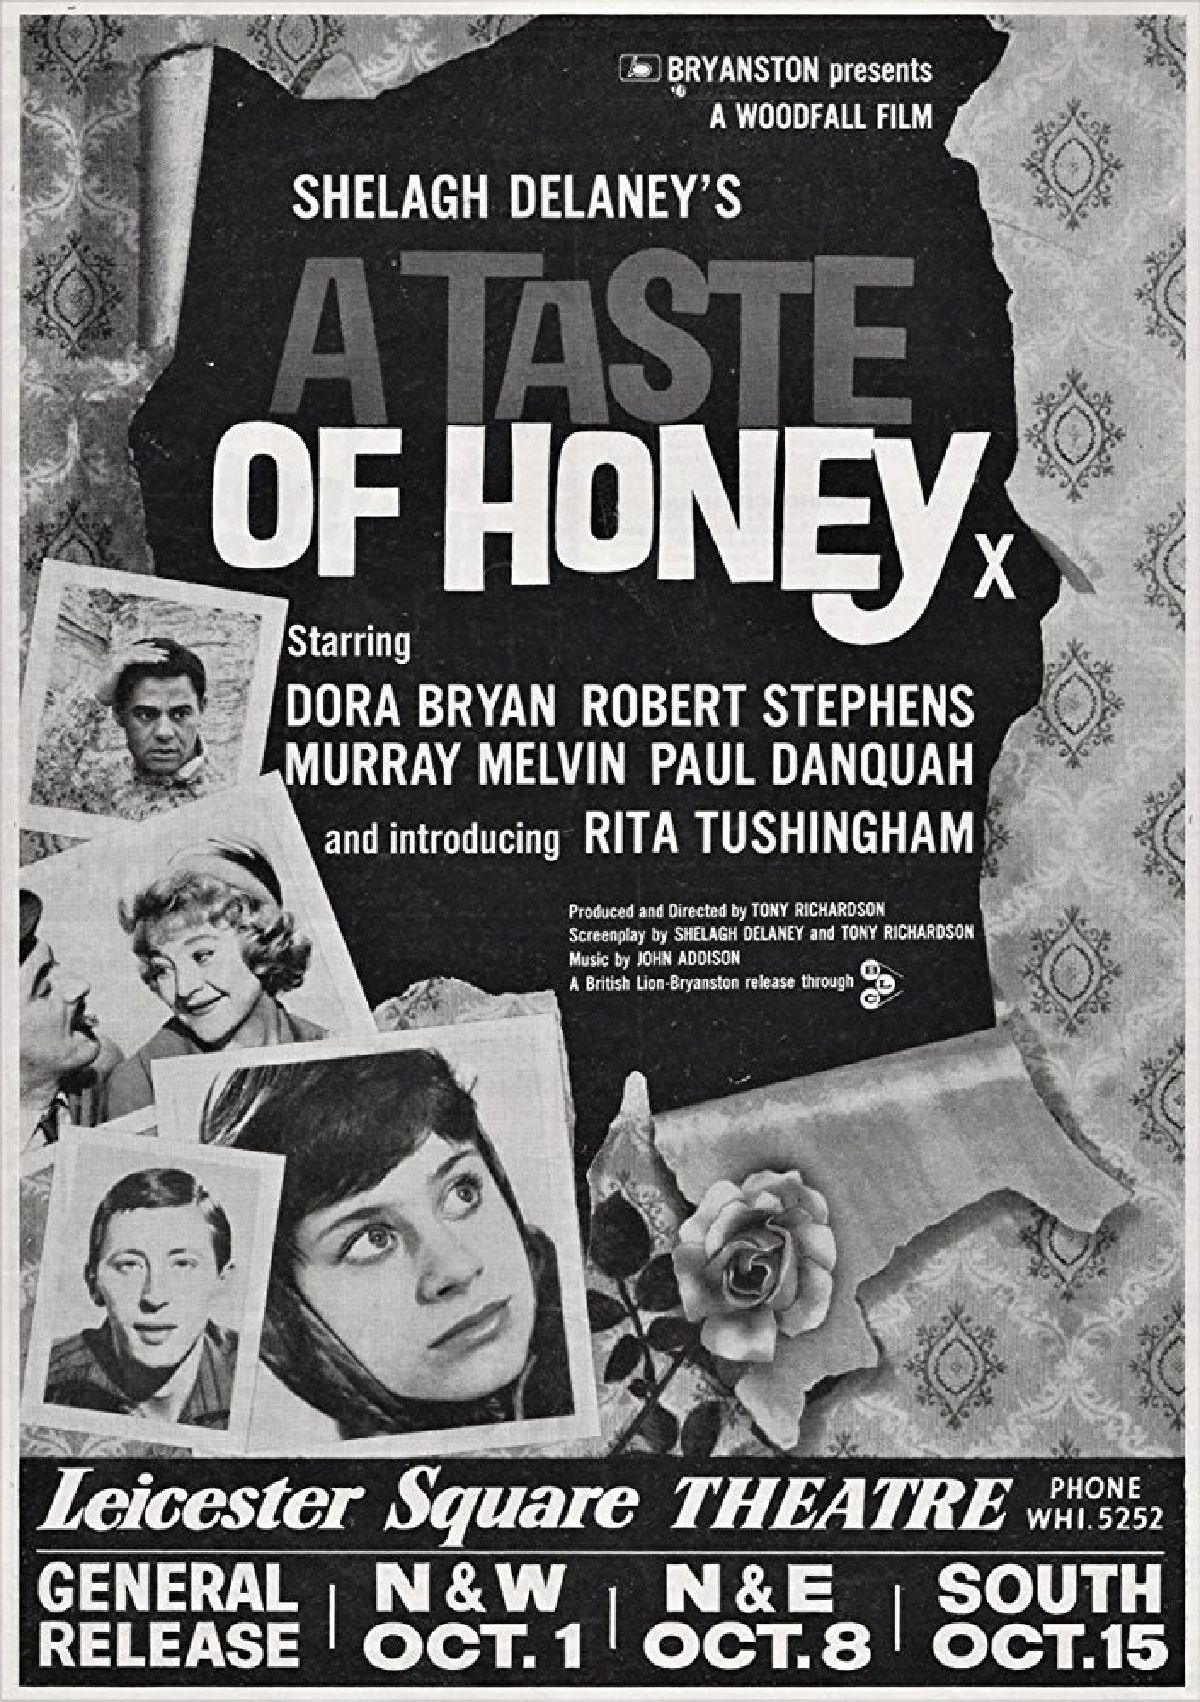 'A Taste Of Honey' movie poster